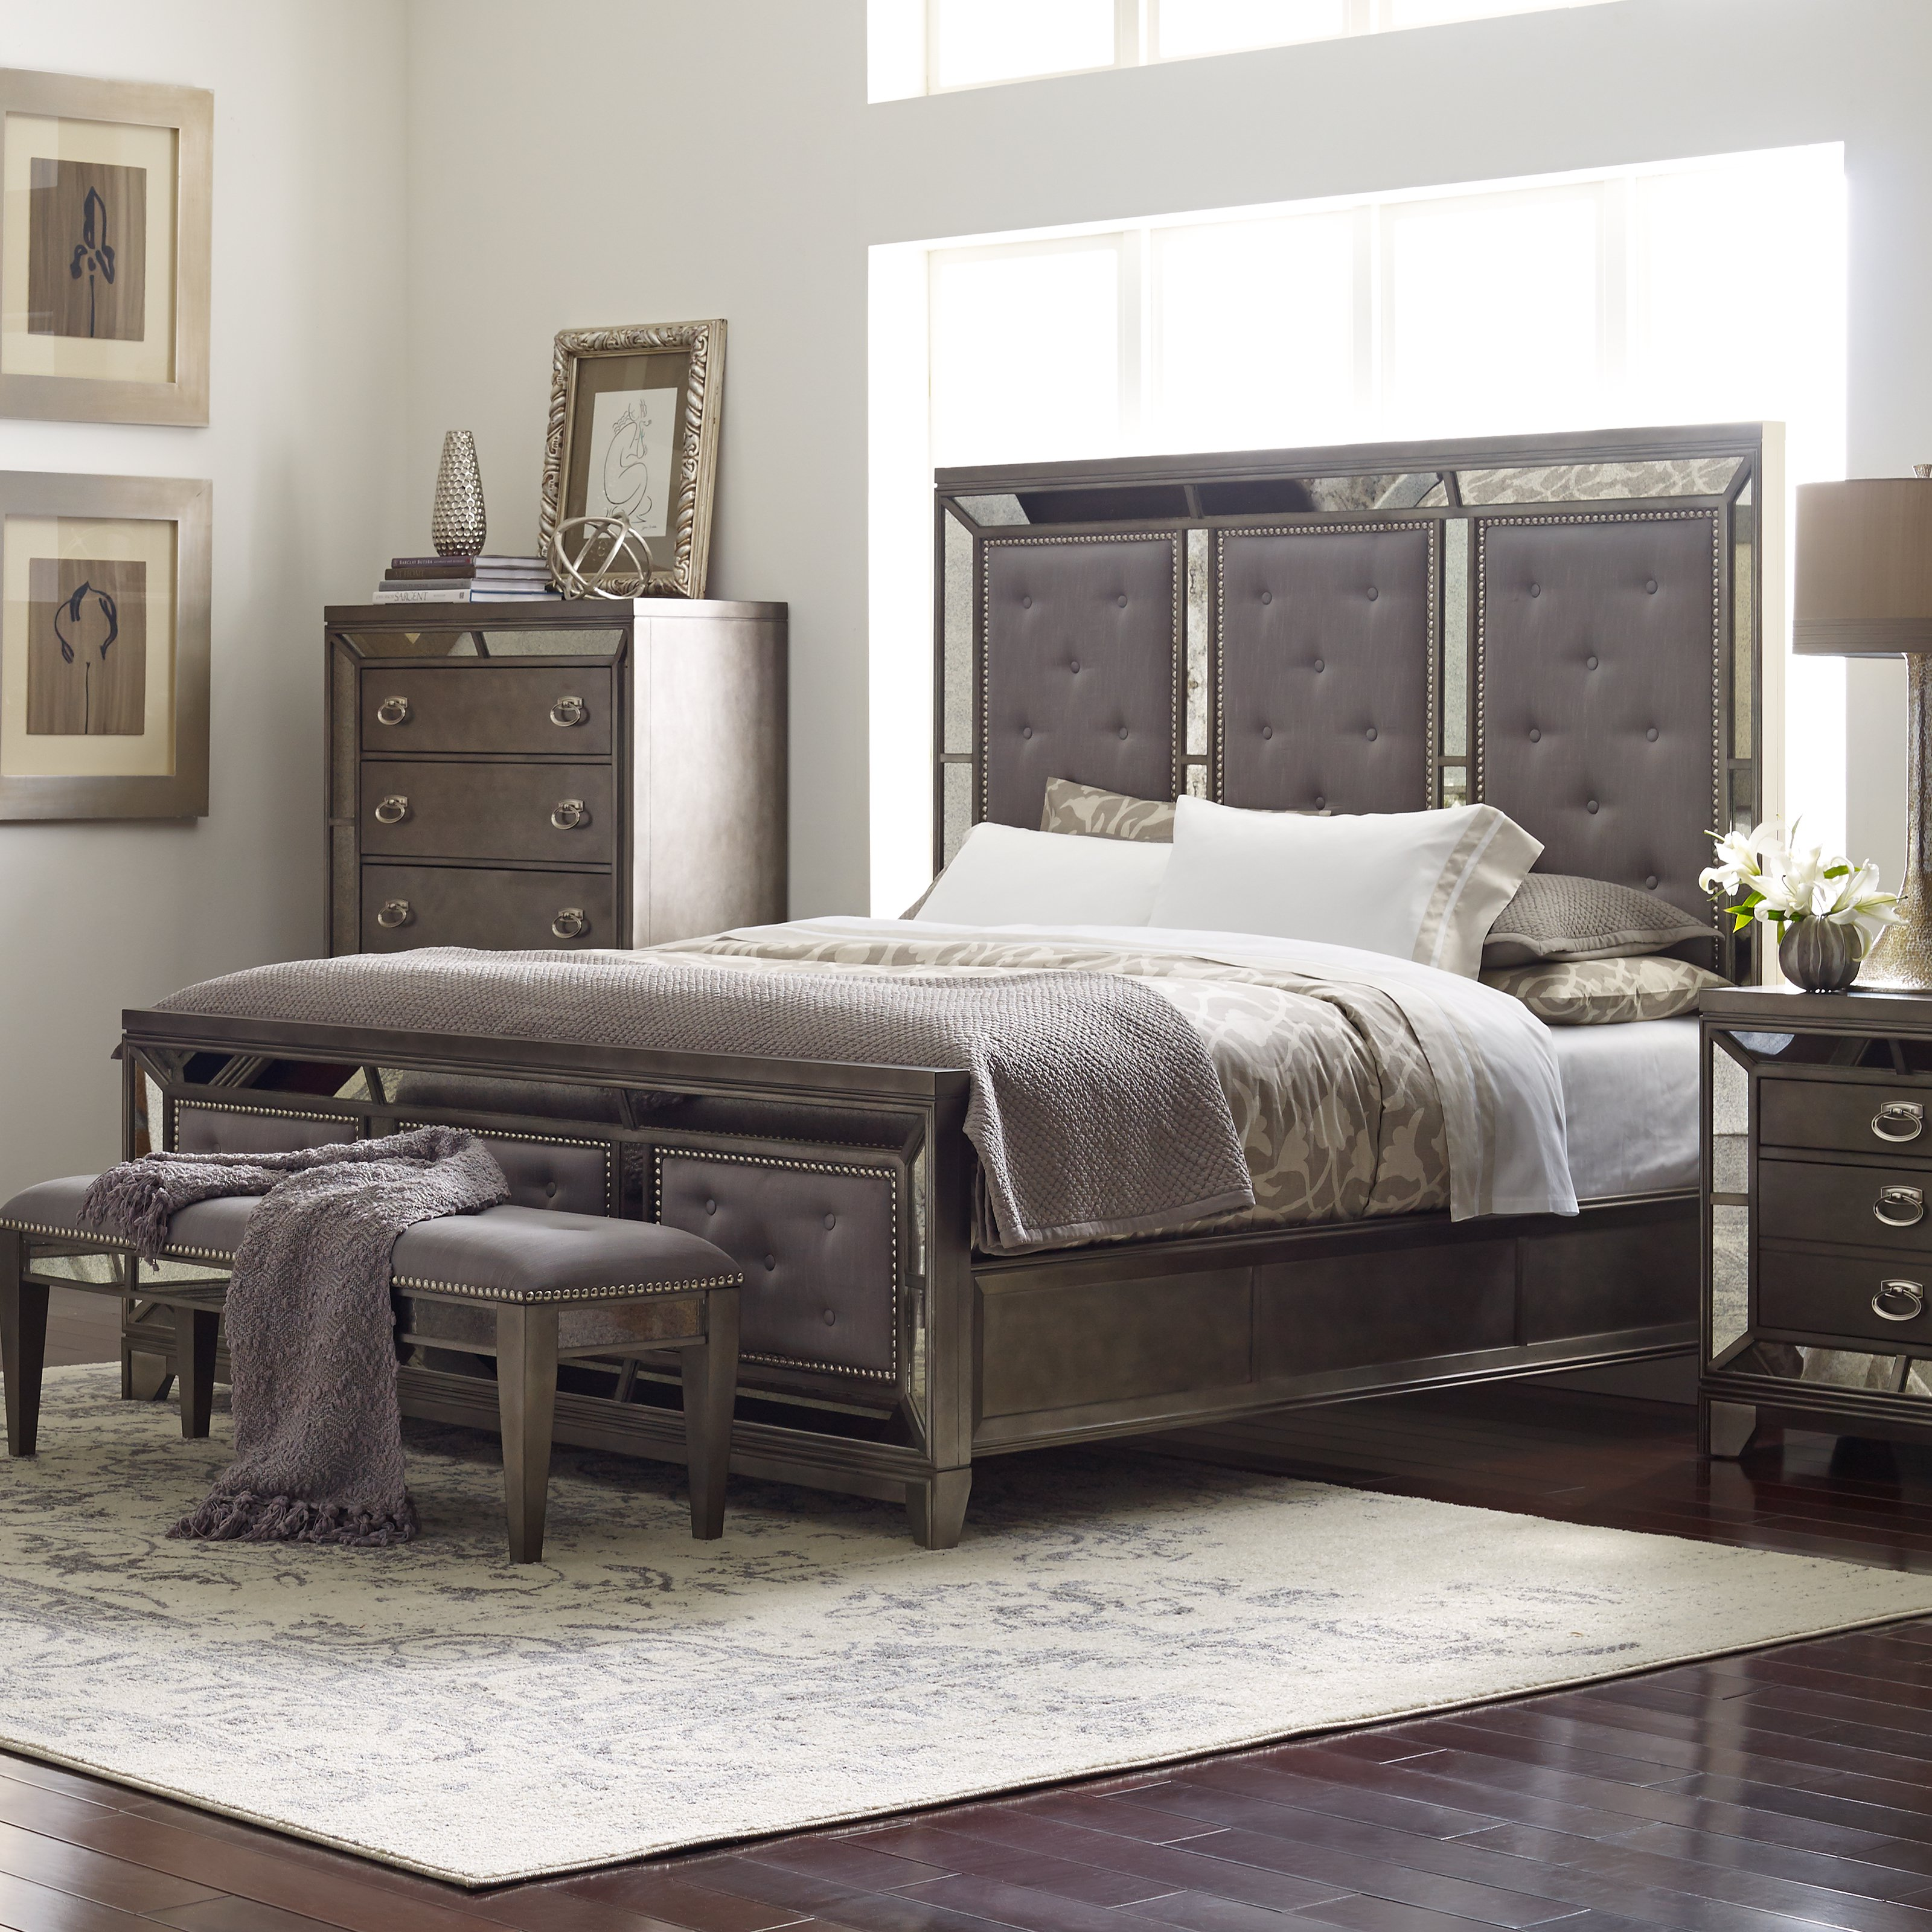 Beau Avalon Furniture Lenox Upholstered Panel Bed   Queen